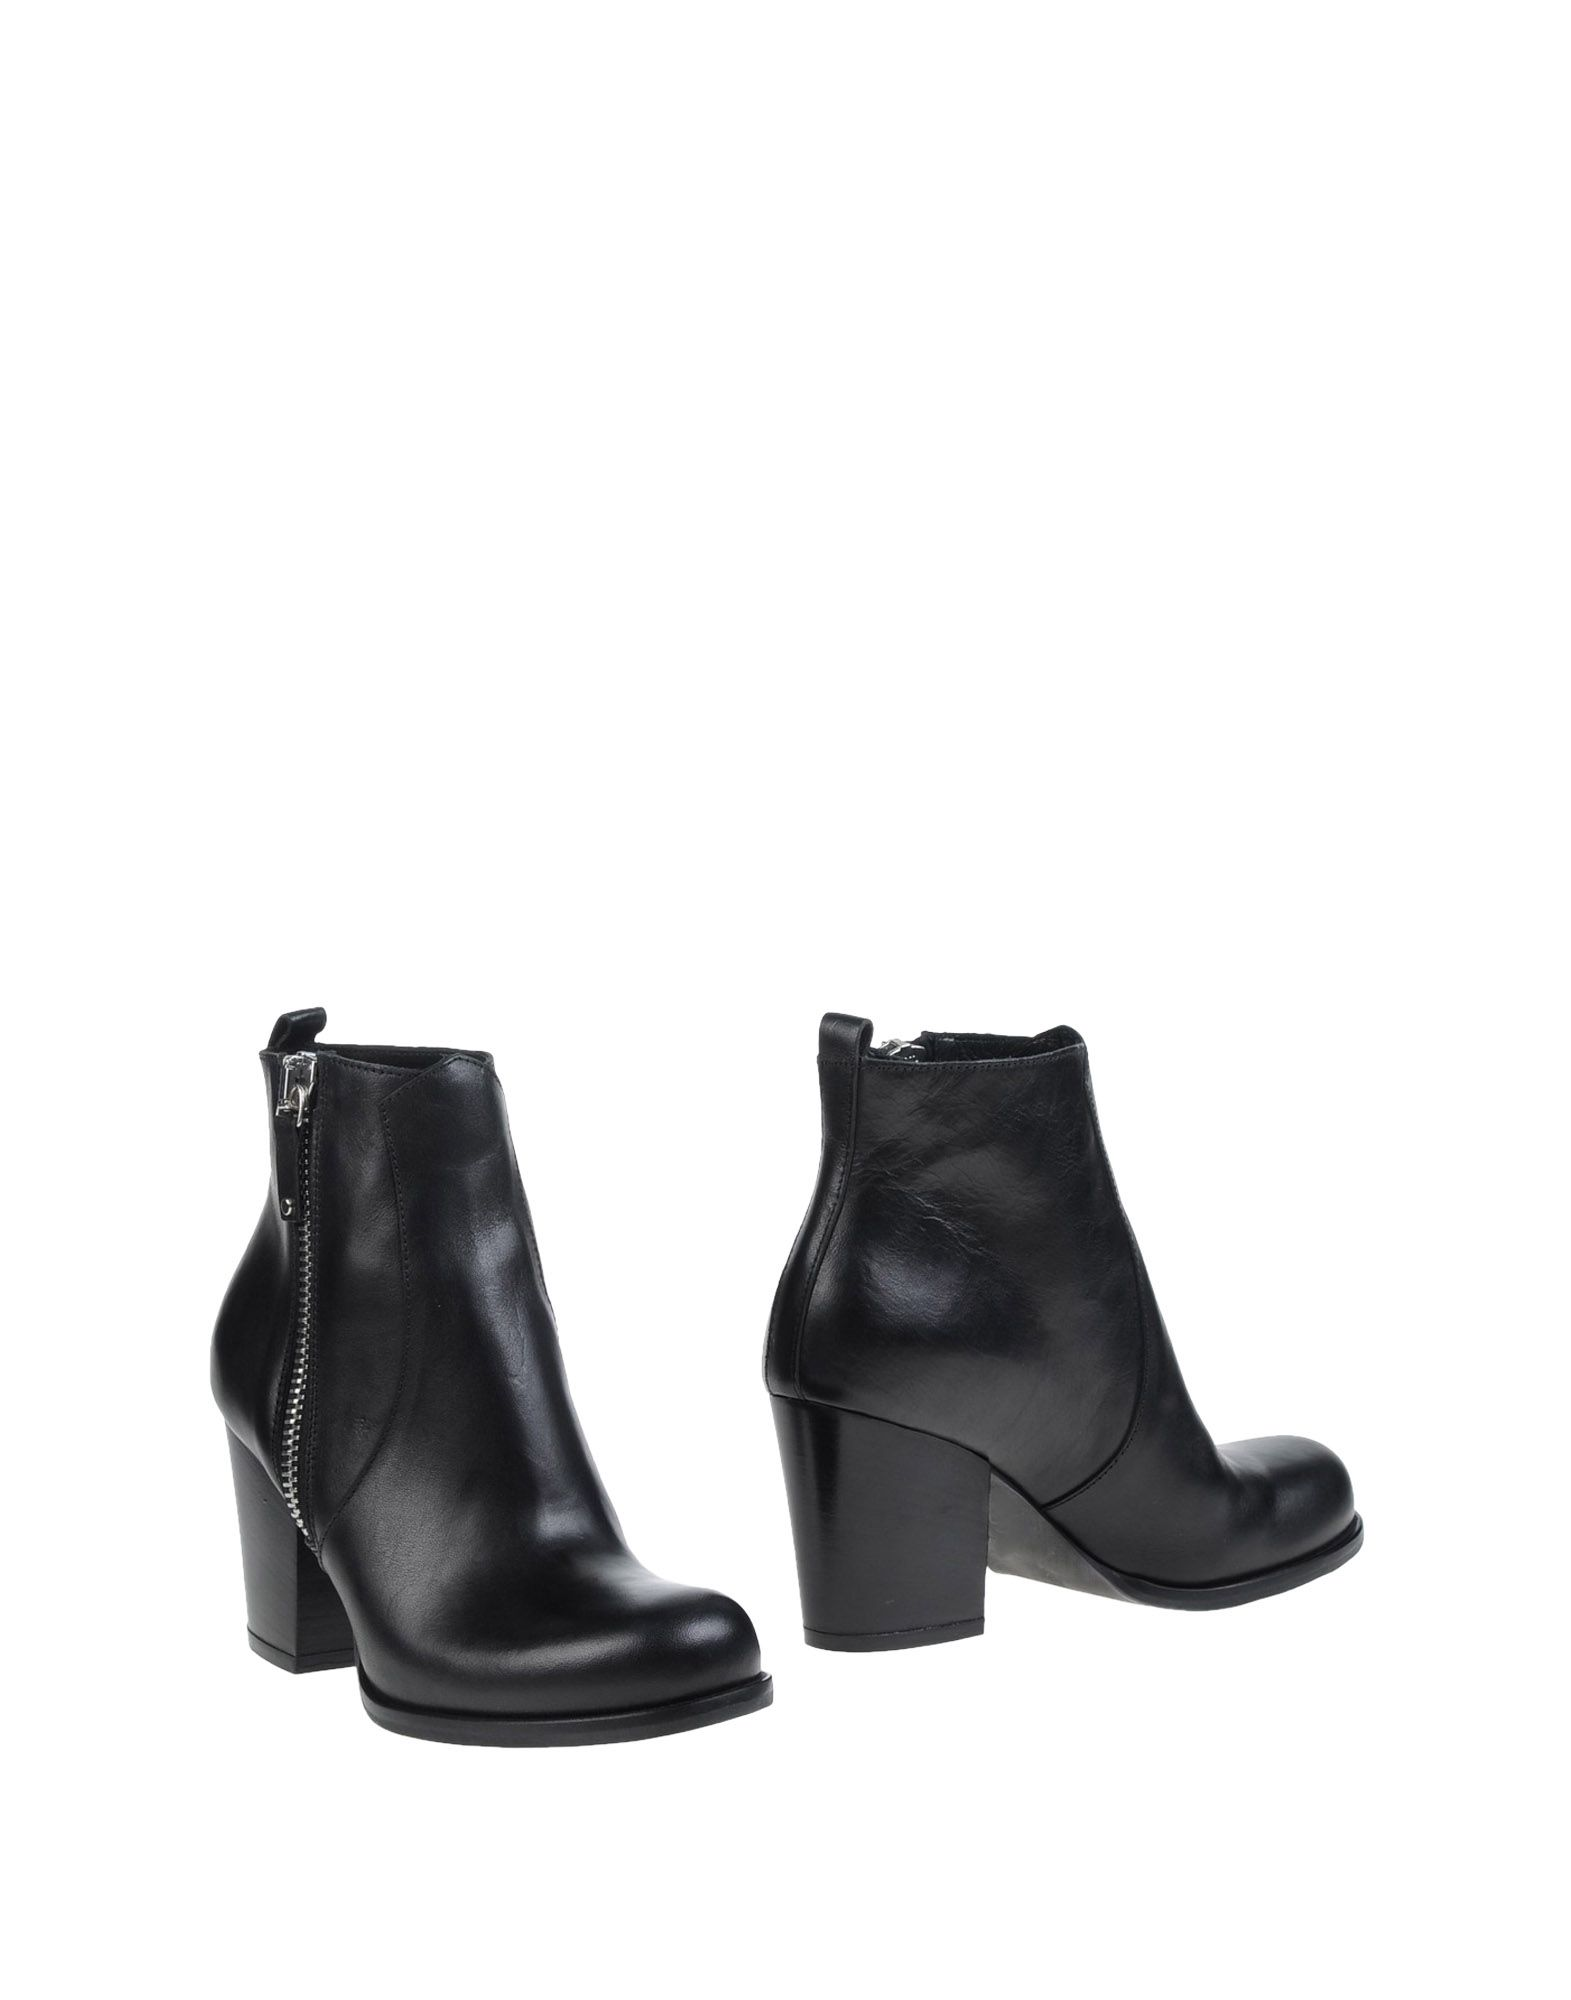 Diesel Black Gold Ankle Boot - Women Diesel Black Gold Ankle Boots online  on YOOX United States - 44883749OF - Diesel Black Gold Ankle Boot - Women Diesel Black Gold Ankle Boots